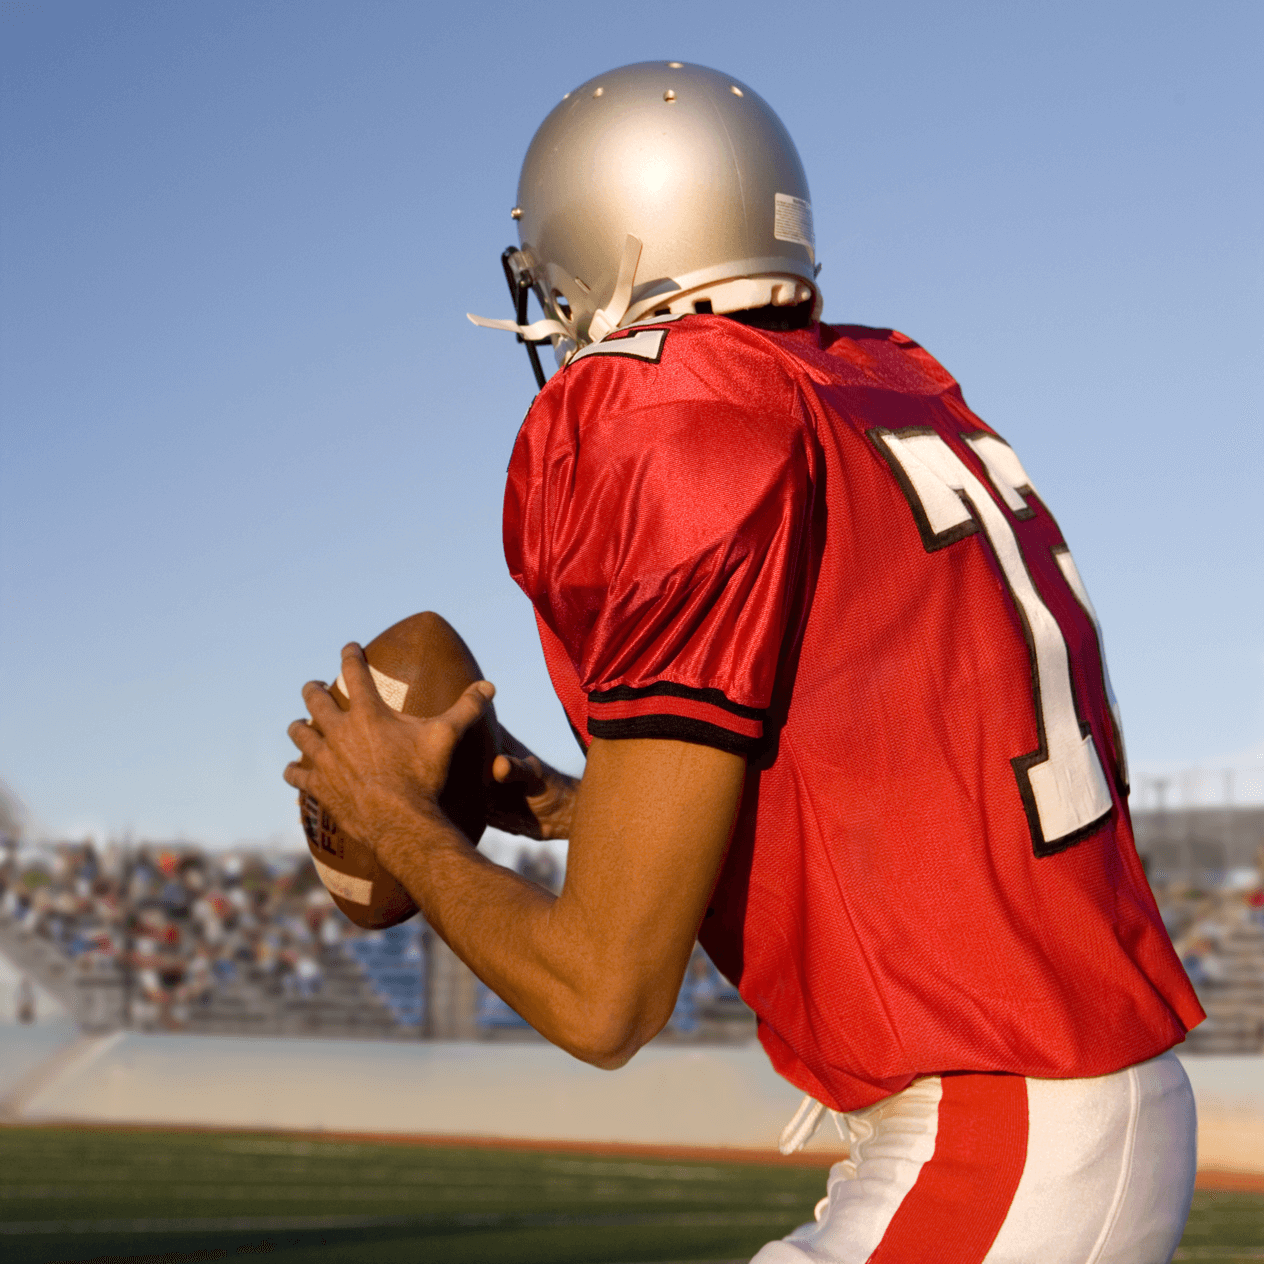 American football quarterback wearing a red jersey perparing to throw the ball.